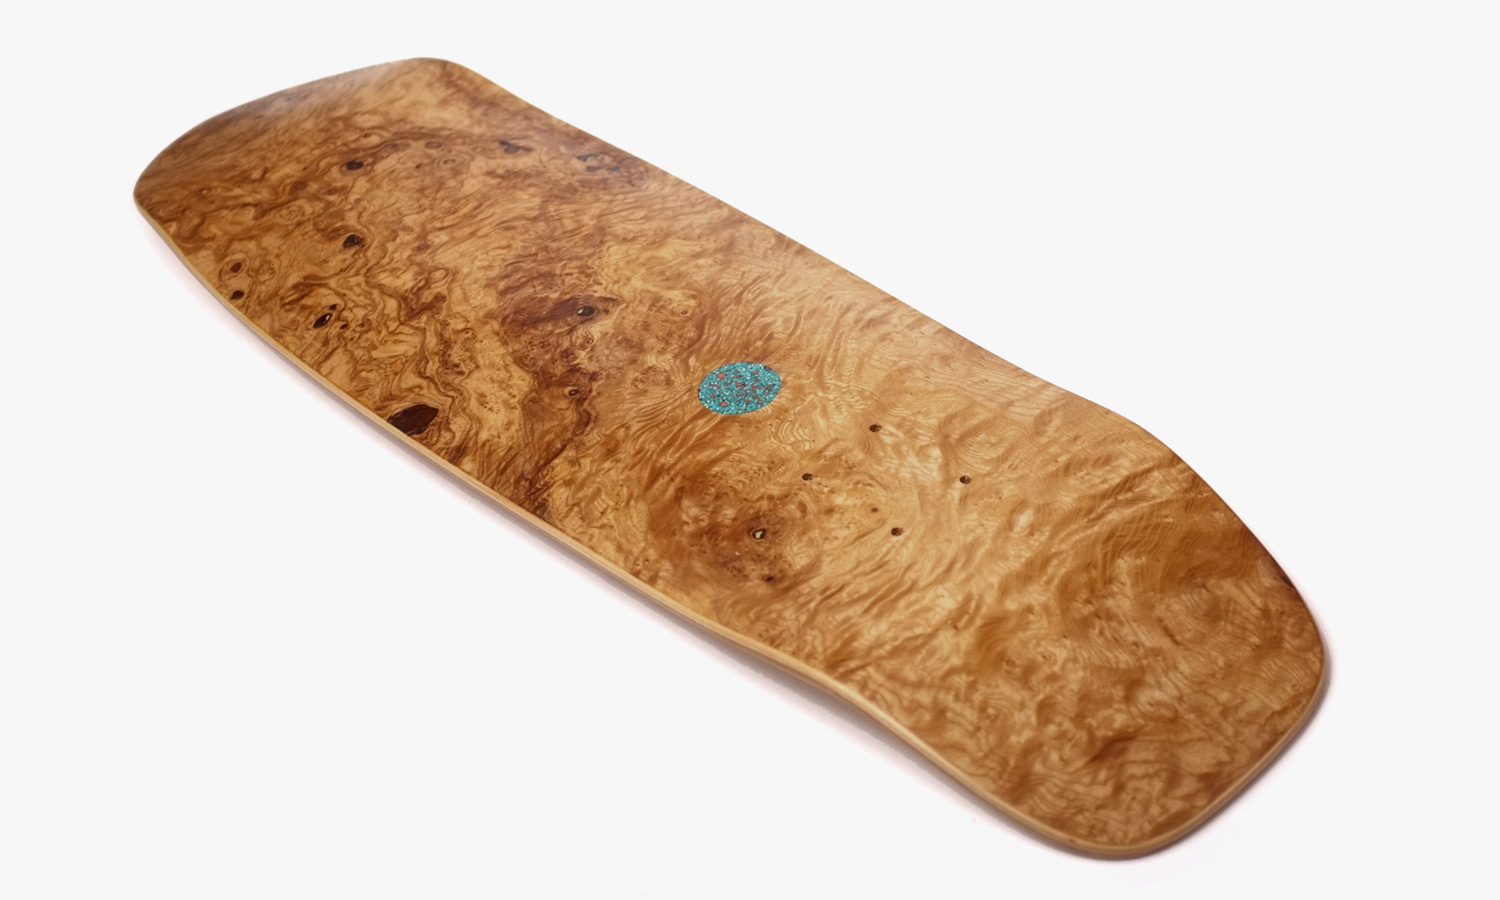 Eastern-Manner-Skate-Decks-feature